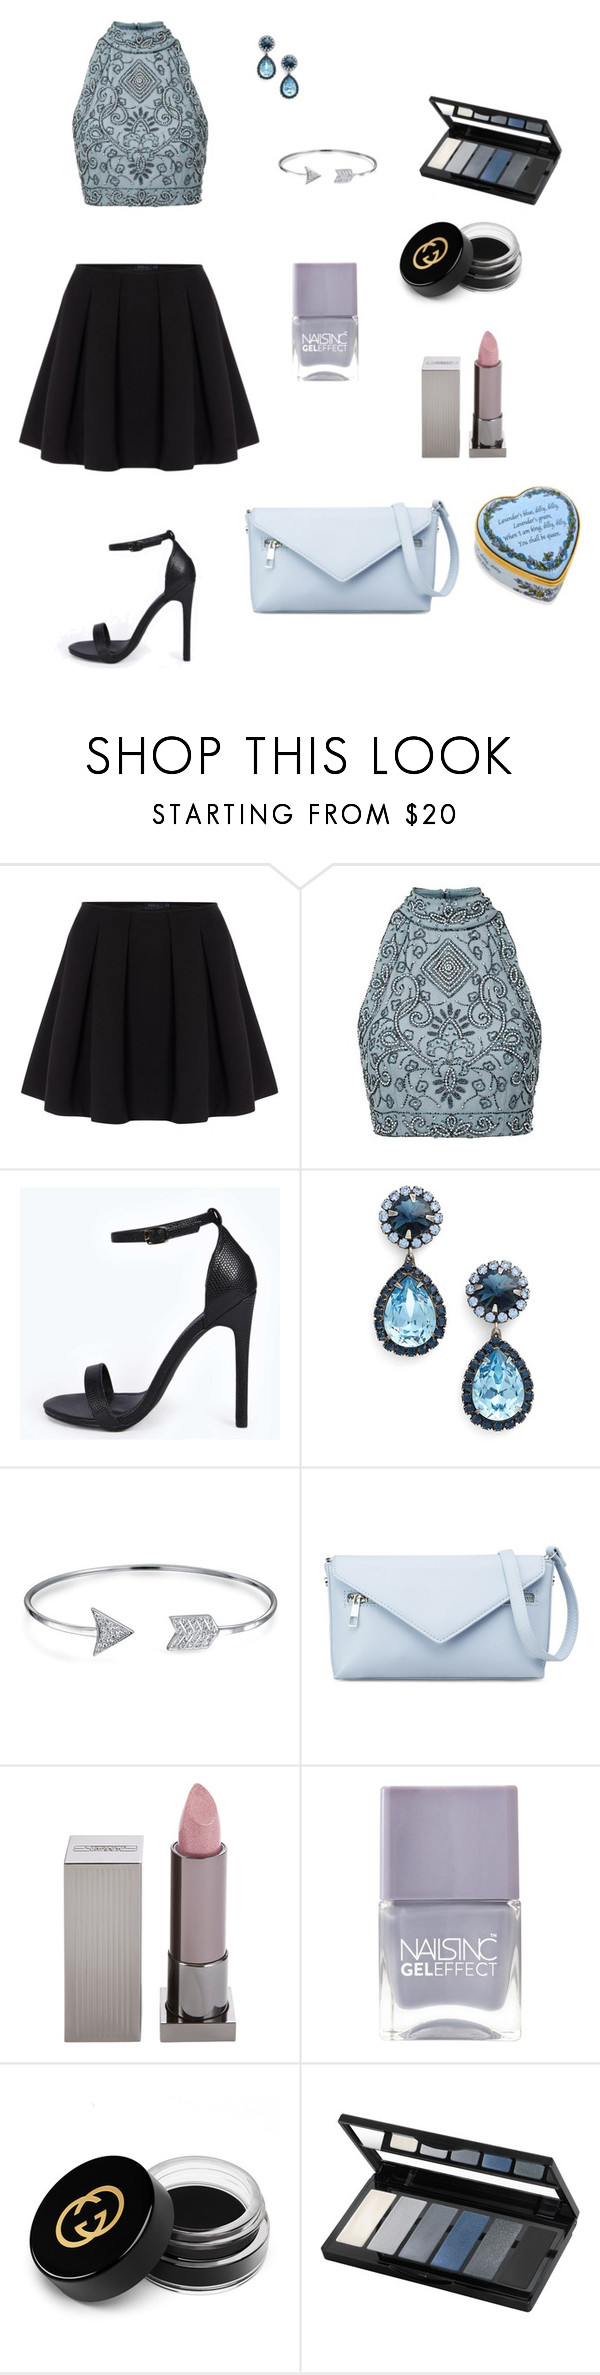 """ice"" by brindusoiu-georgiana on Polyvore featuring Polo Ralph Lauren, Boohoo, DANNIJO, Bling Jewelry, Lipstick Queen, Nails Inc., Gucci, Isadora and Halcyon Days"